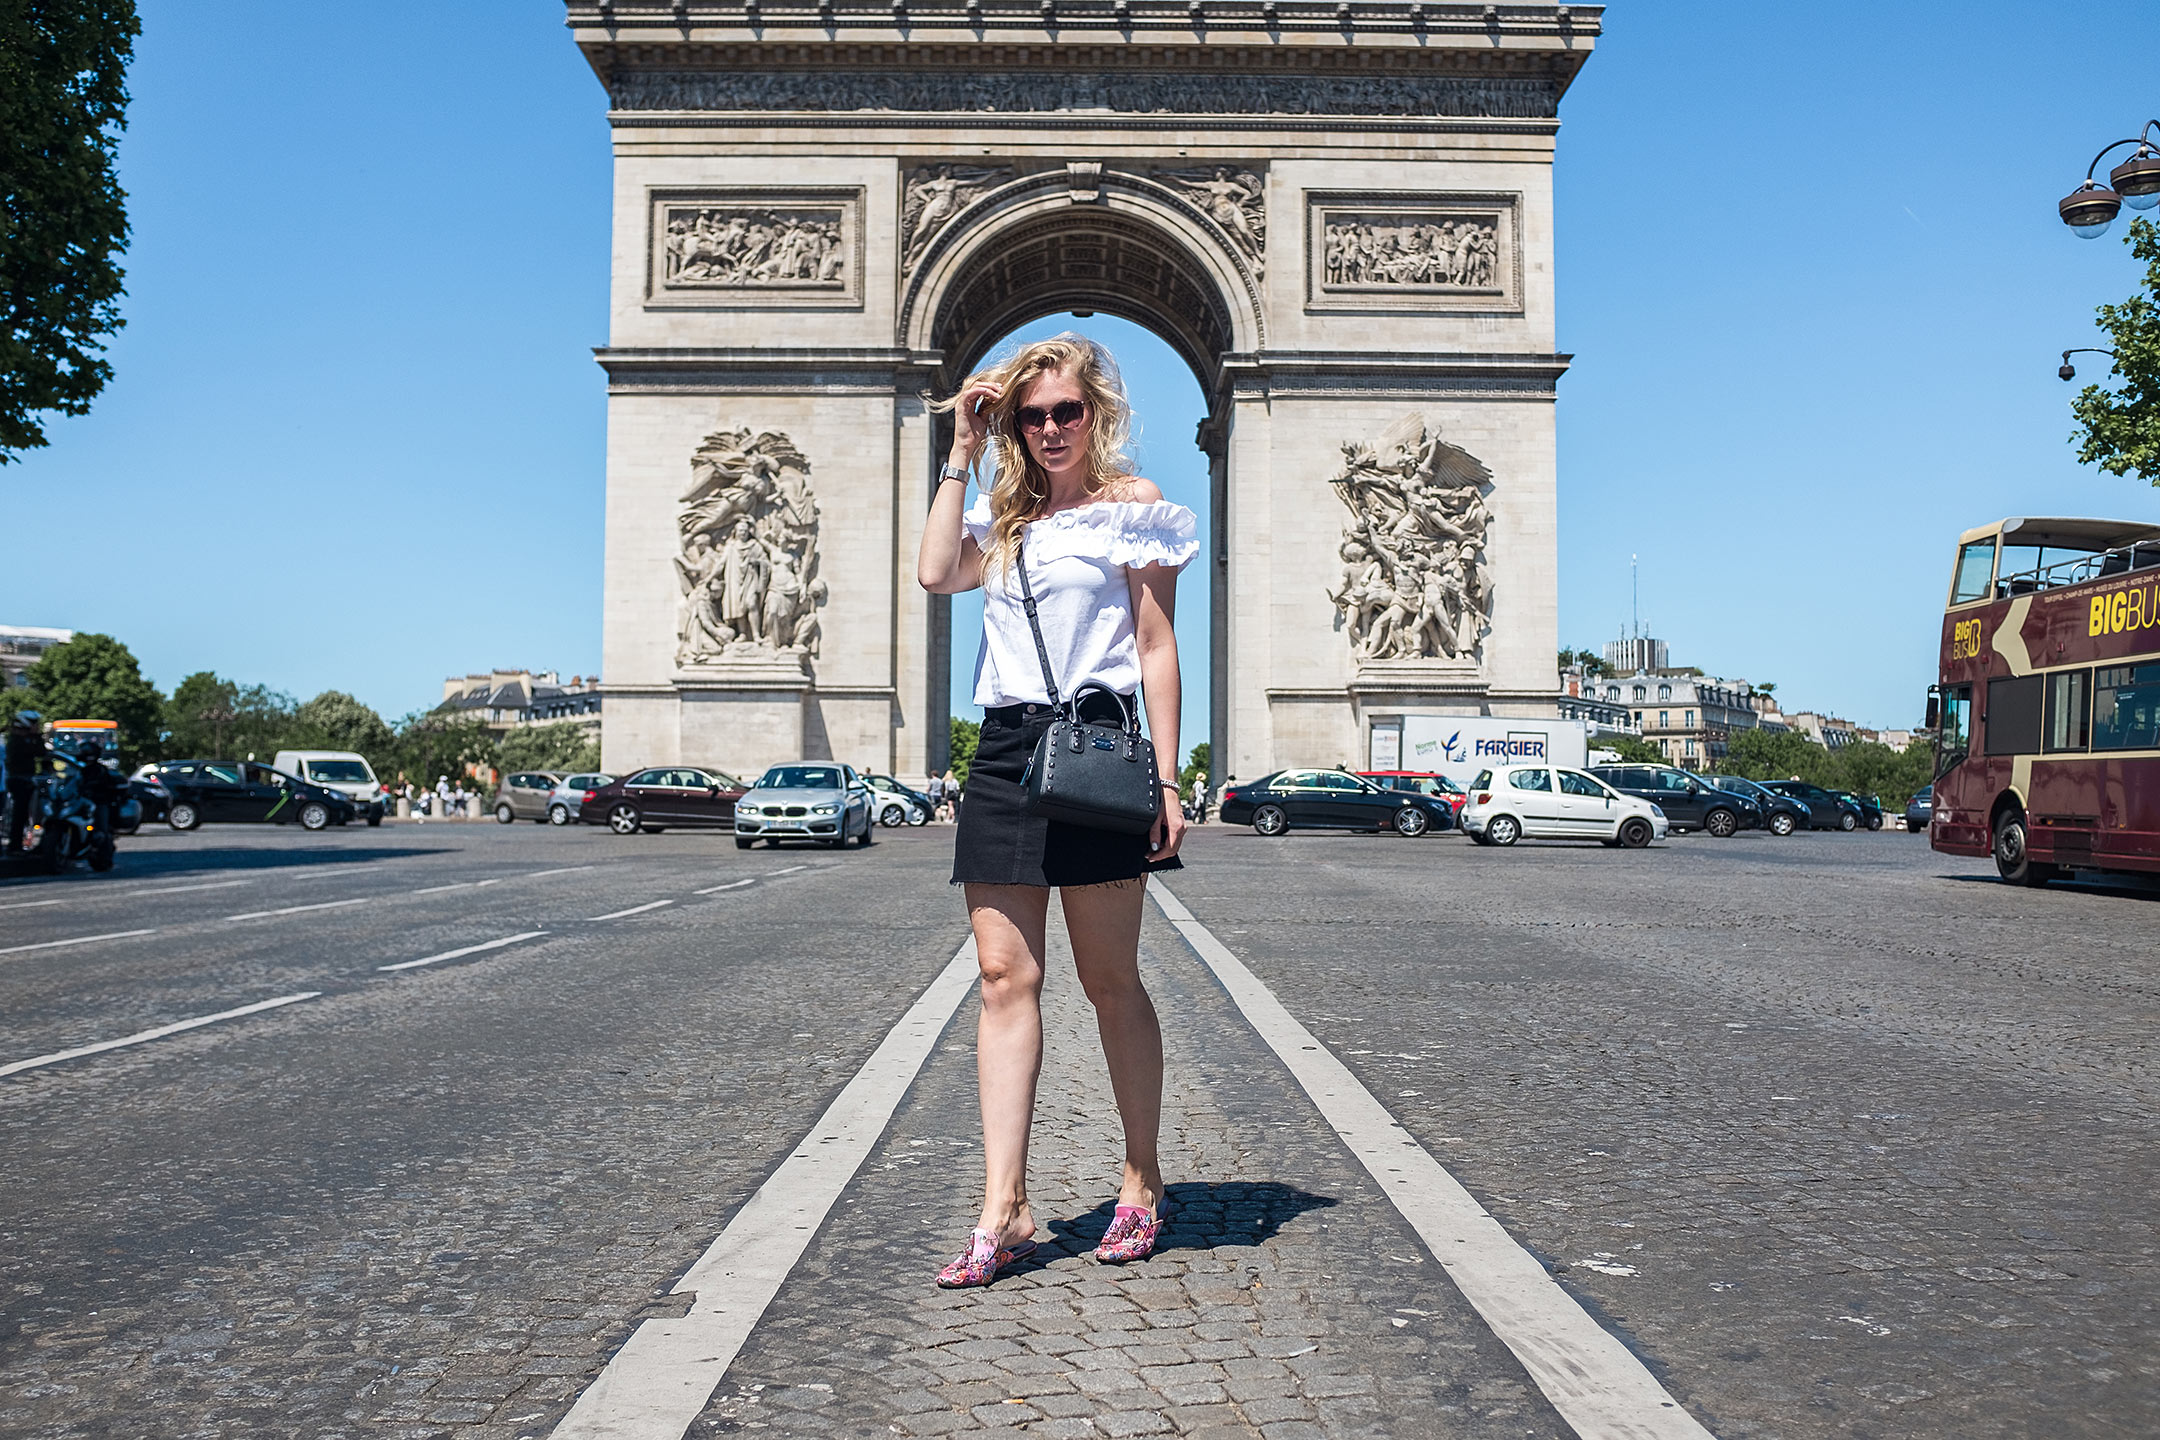 paris-arc-de-triomphe-travelblog-sunnyinga